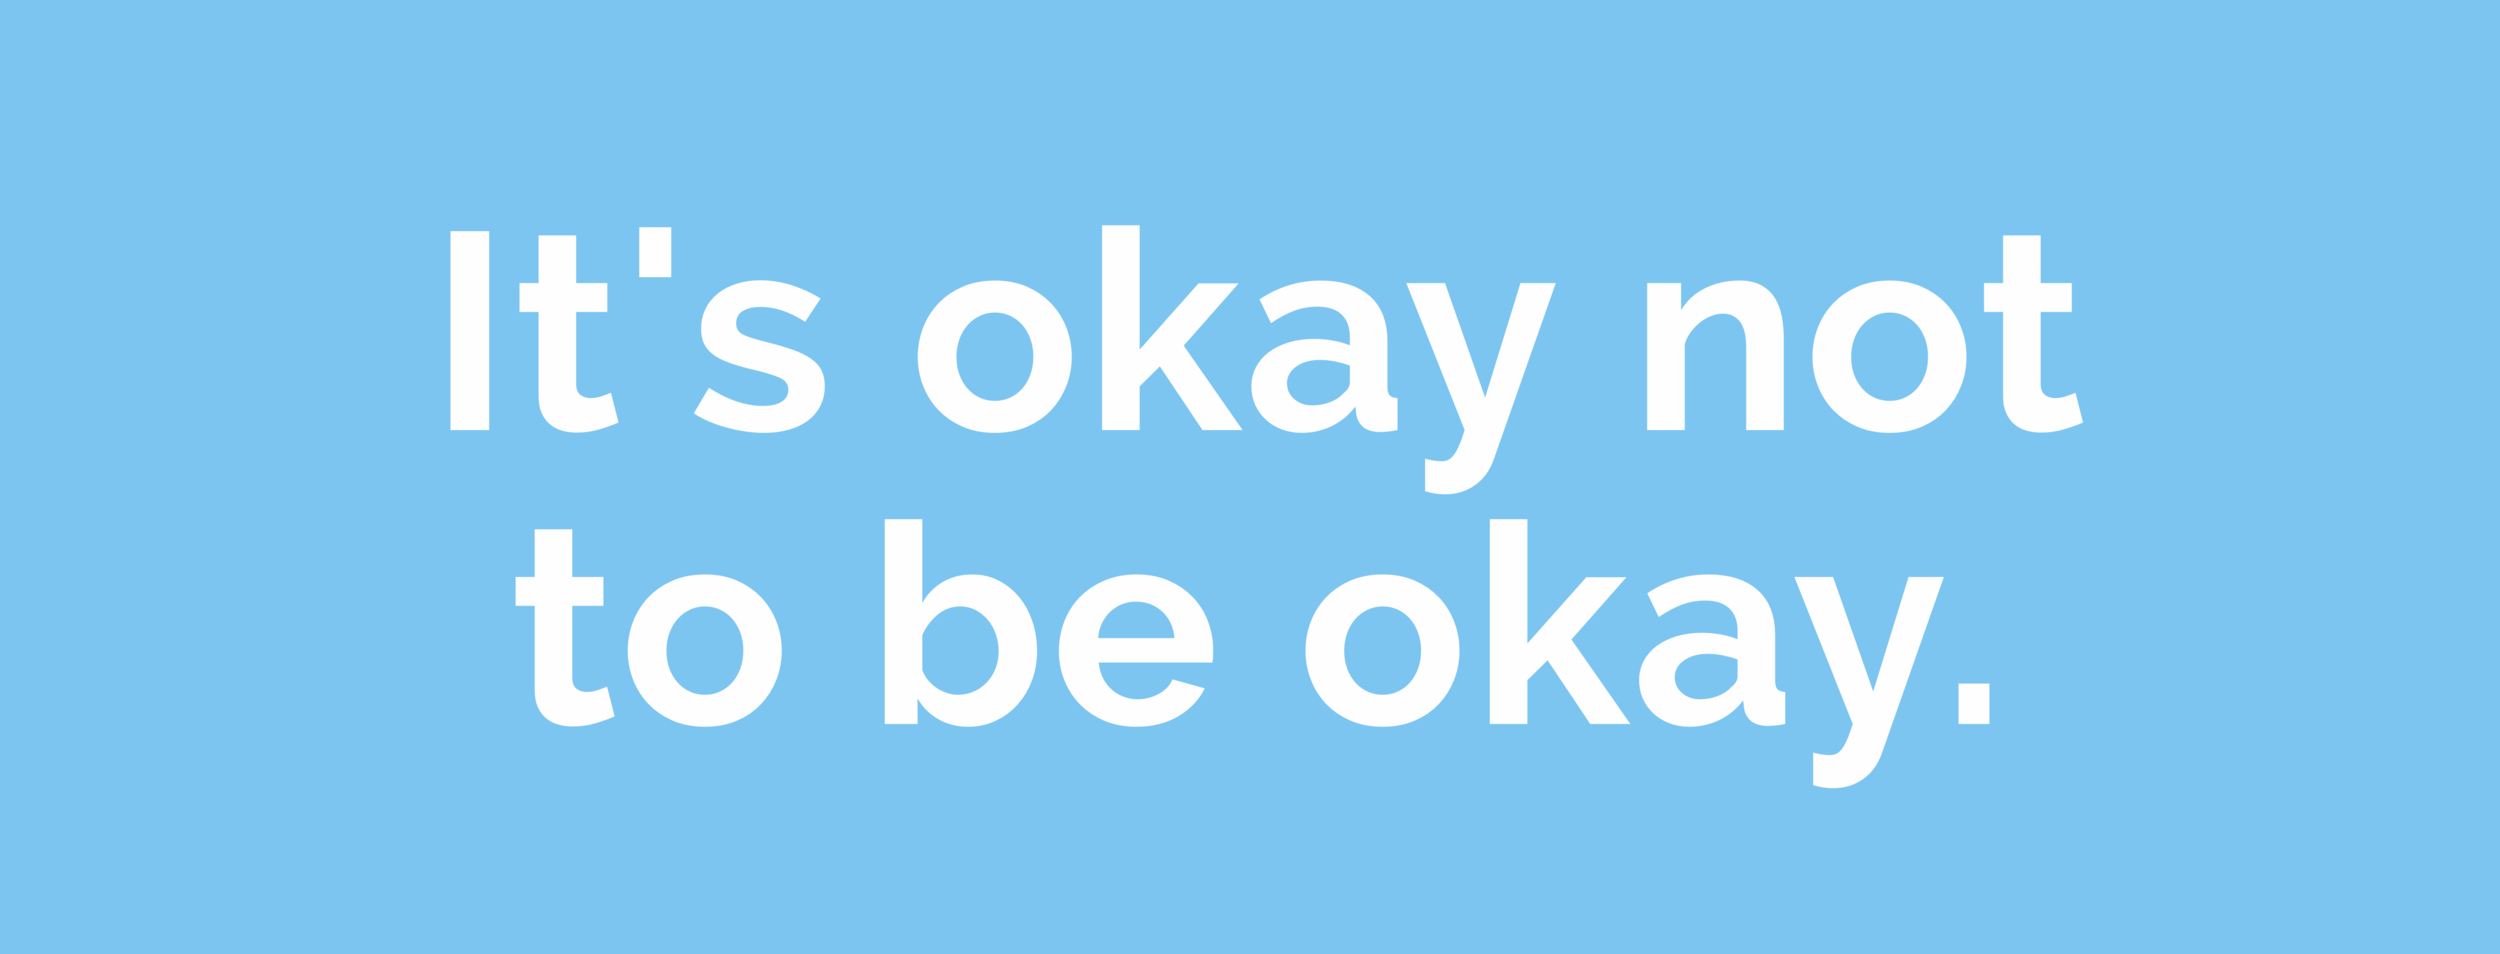 It's okay not to be okay copy.png